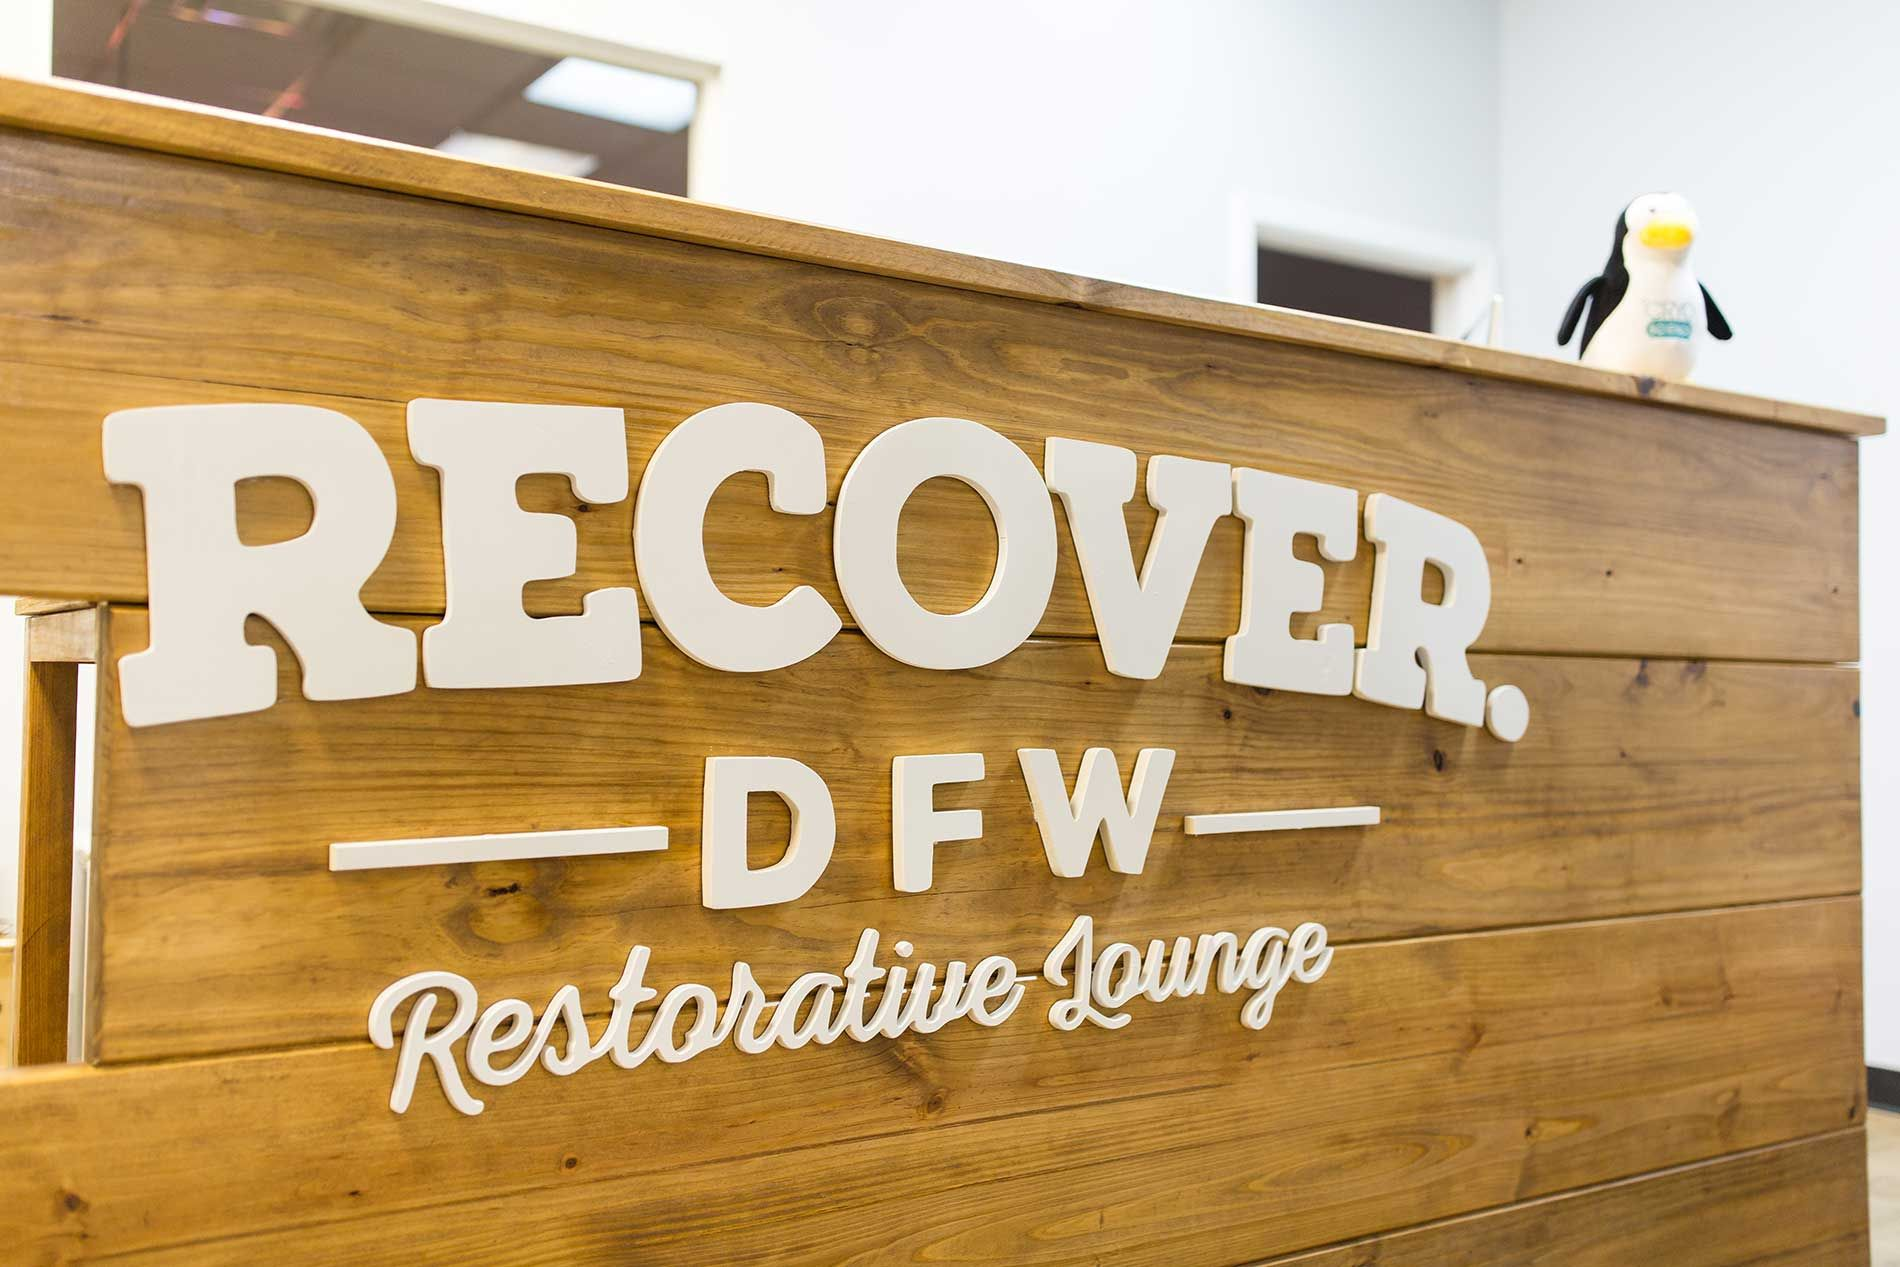 Recover DFW is a restorative lounge located in North